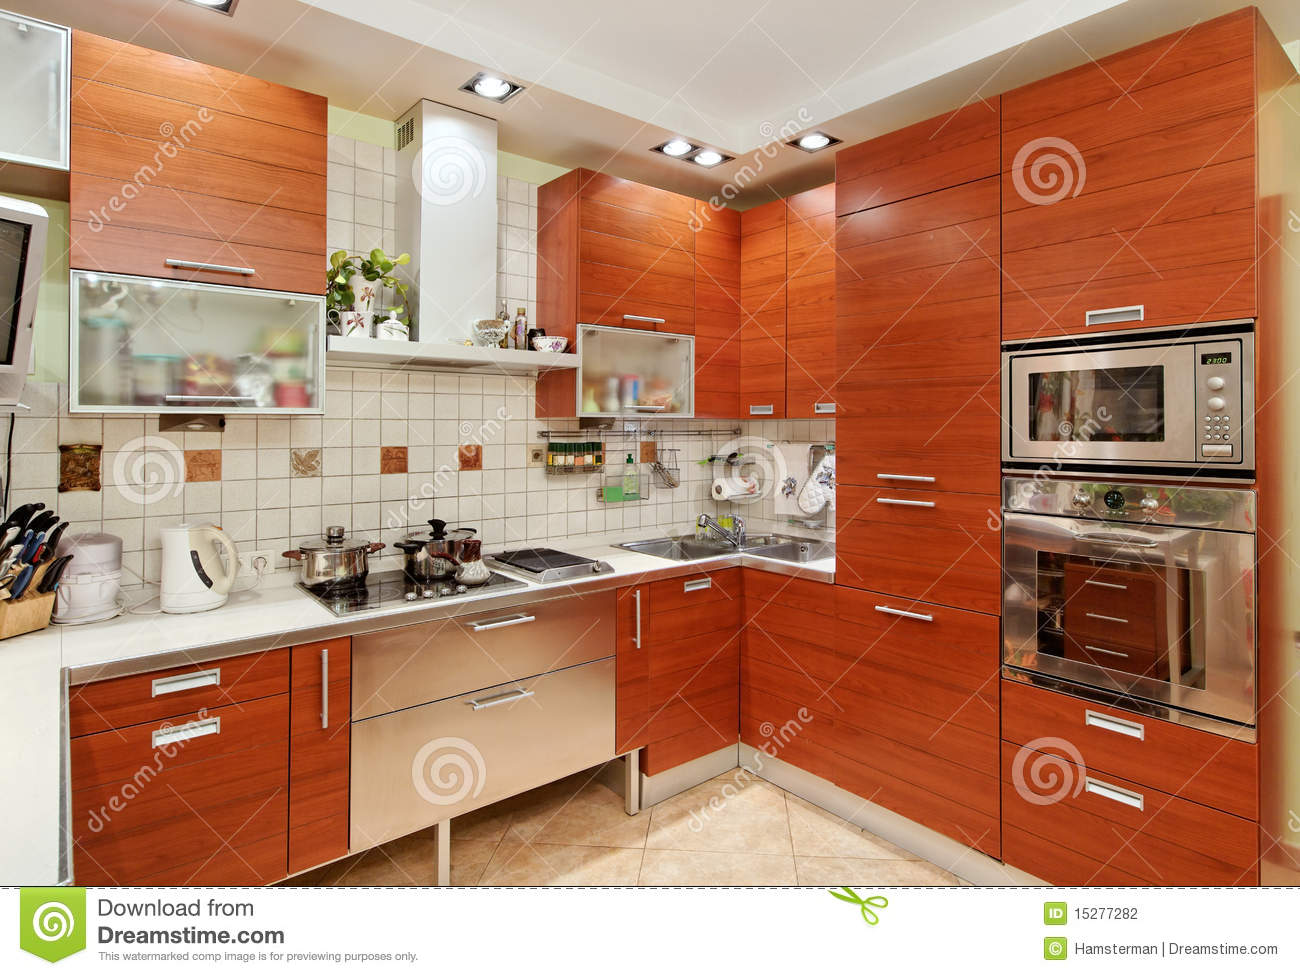 kitchen wood furniture kitchen interior with build in microwave oven royalty free 13880